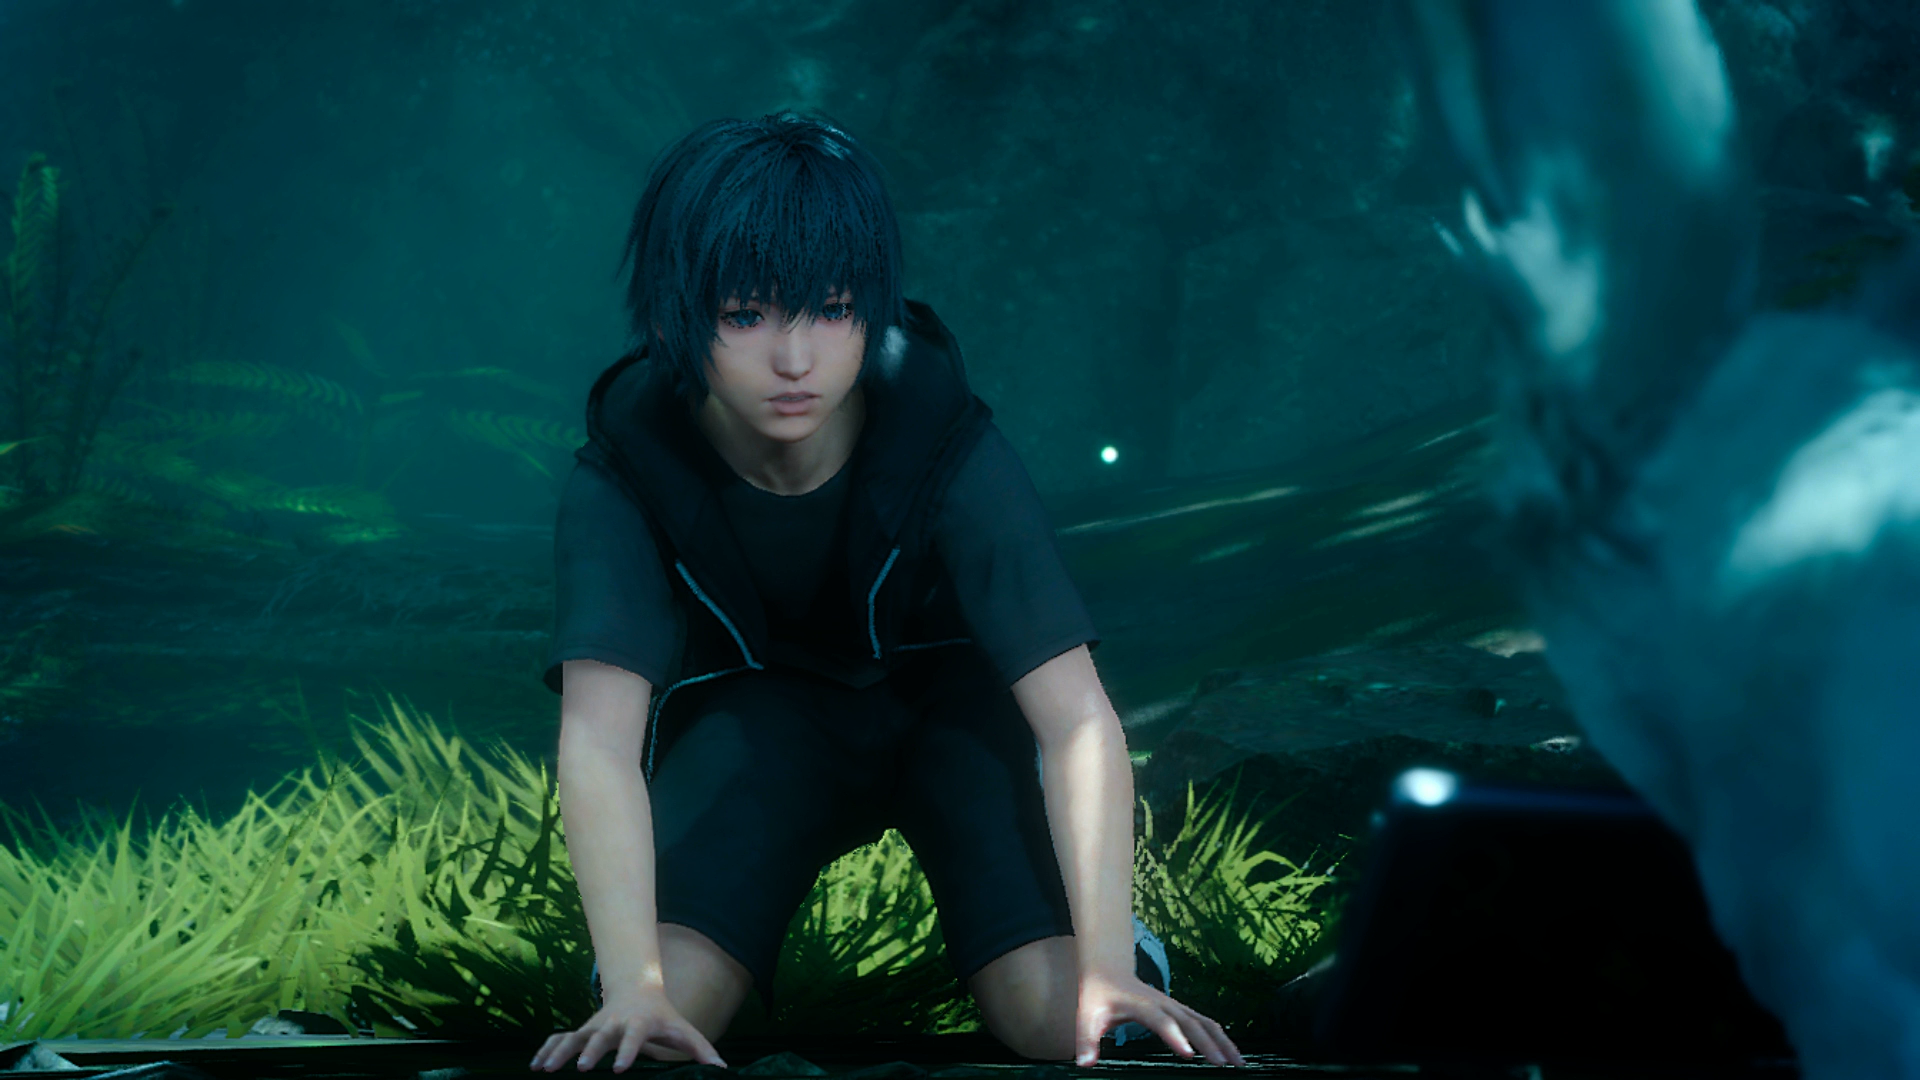 Young Noctis wakes up in a forest in his dreams. Wait, can you wake up in a dream but still be dreaming?